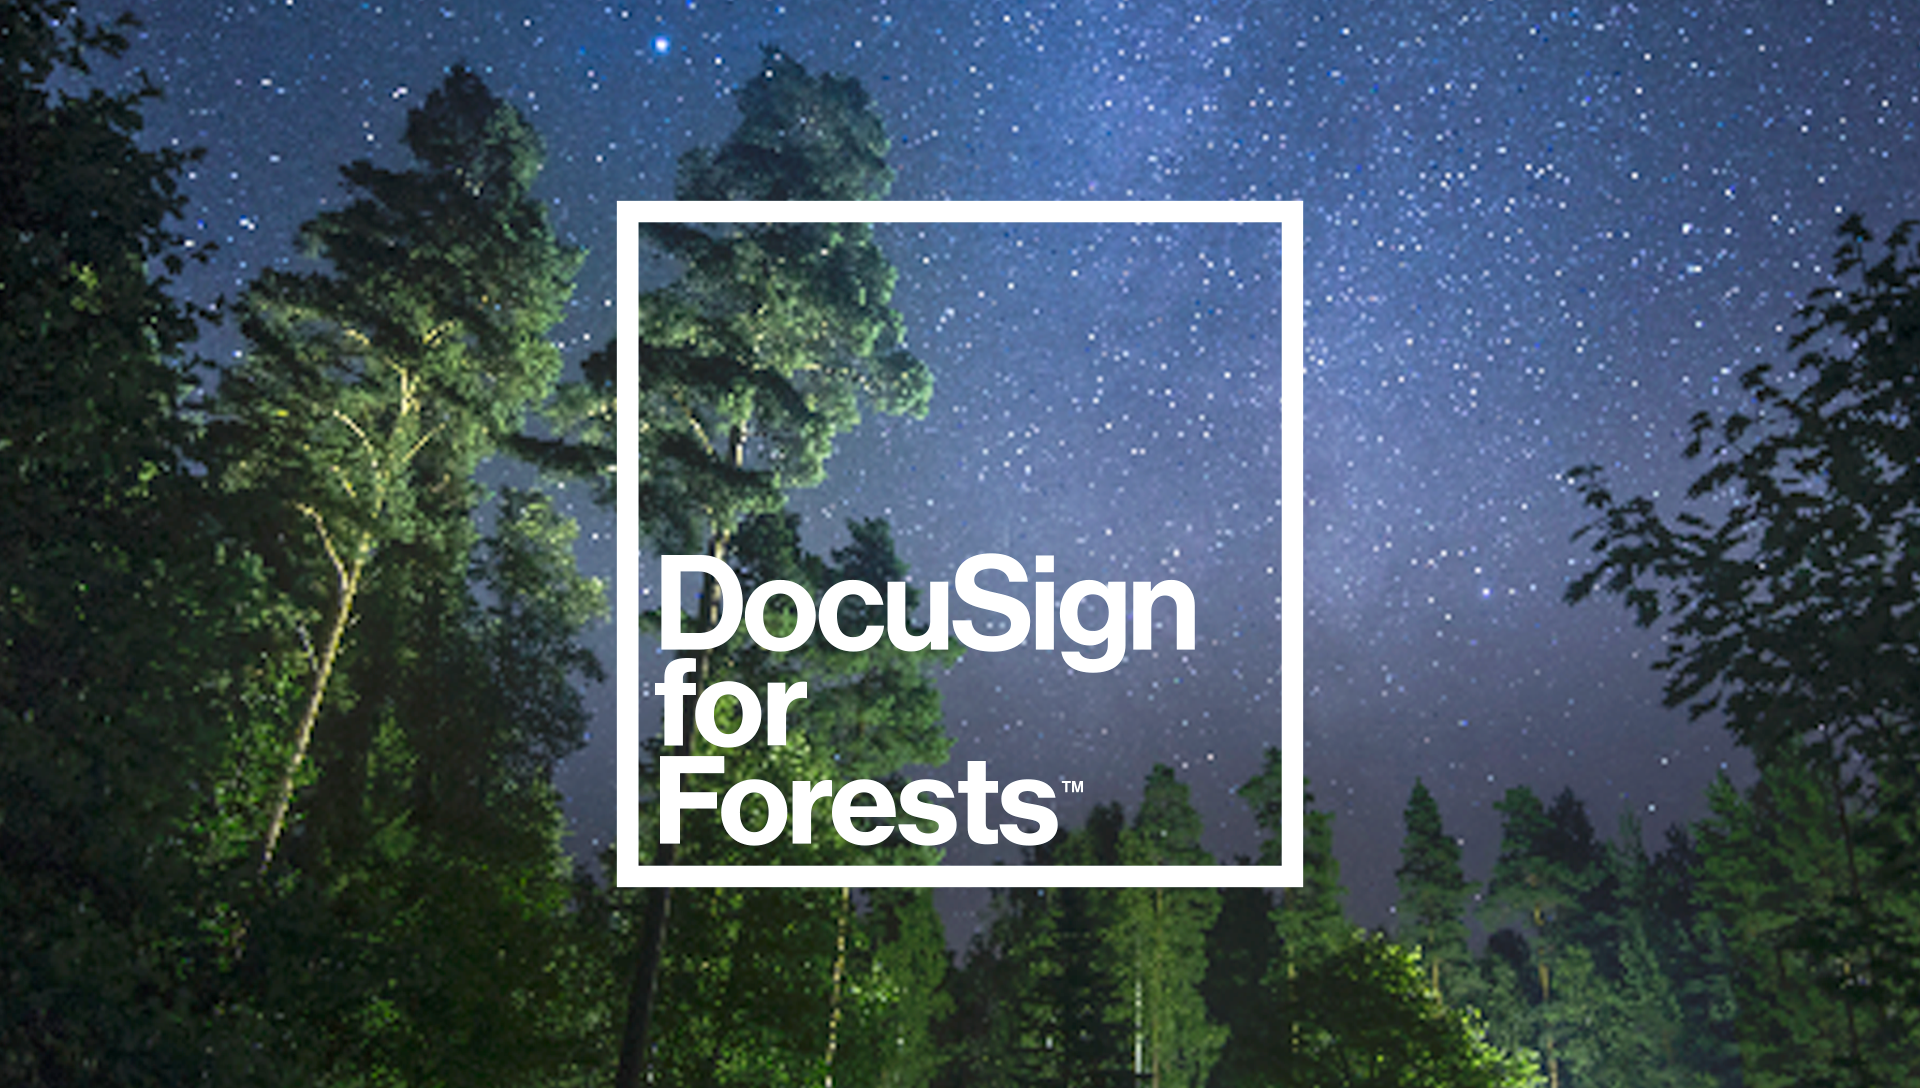 DocuSign for Forestsの静止画